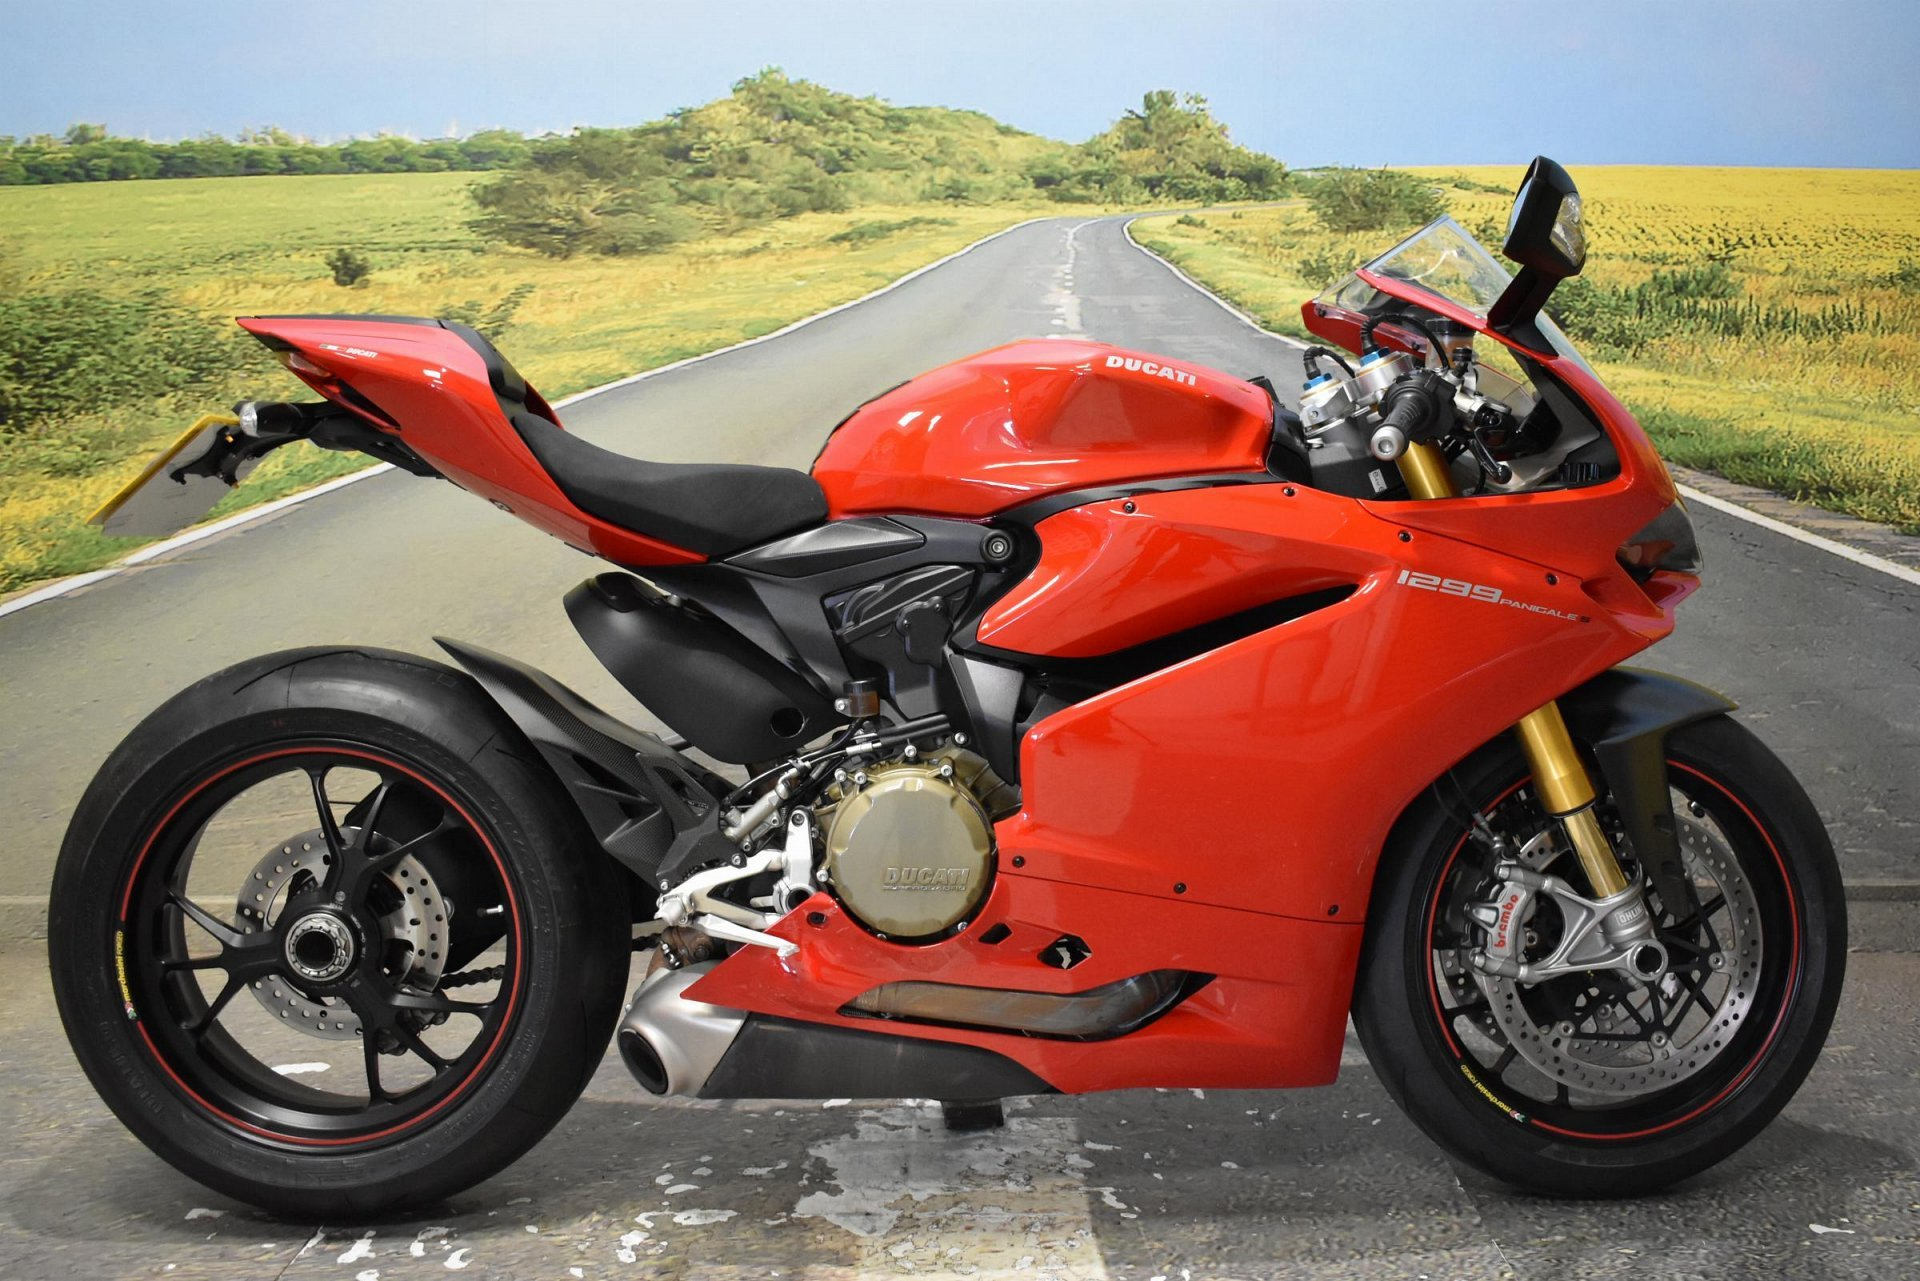 2016 Ducati 1299 S Panigale for sale in Derbyshire